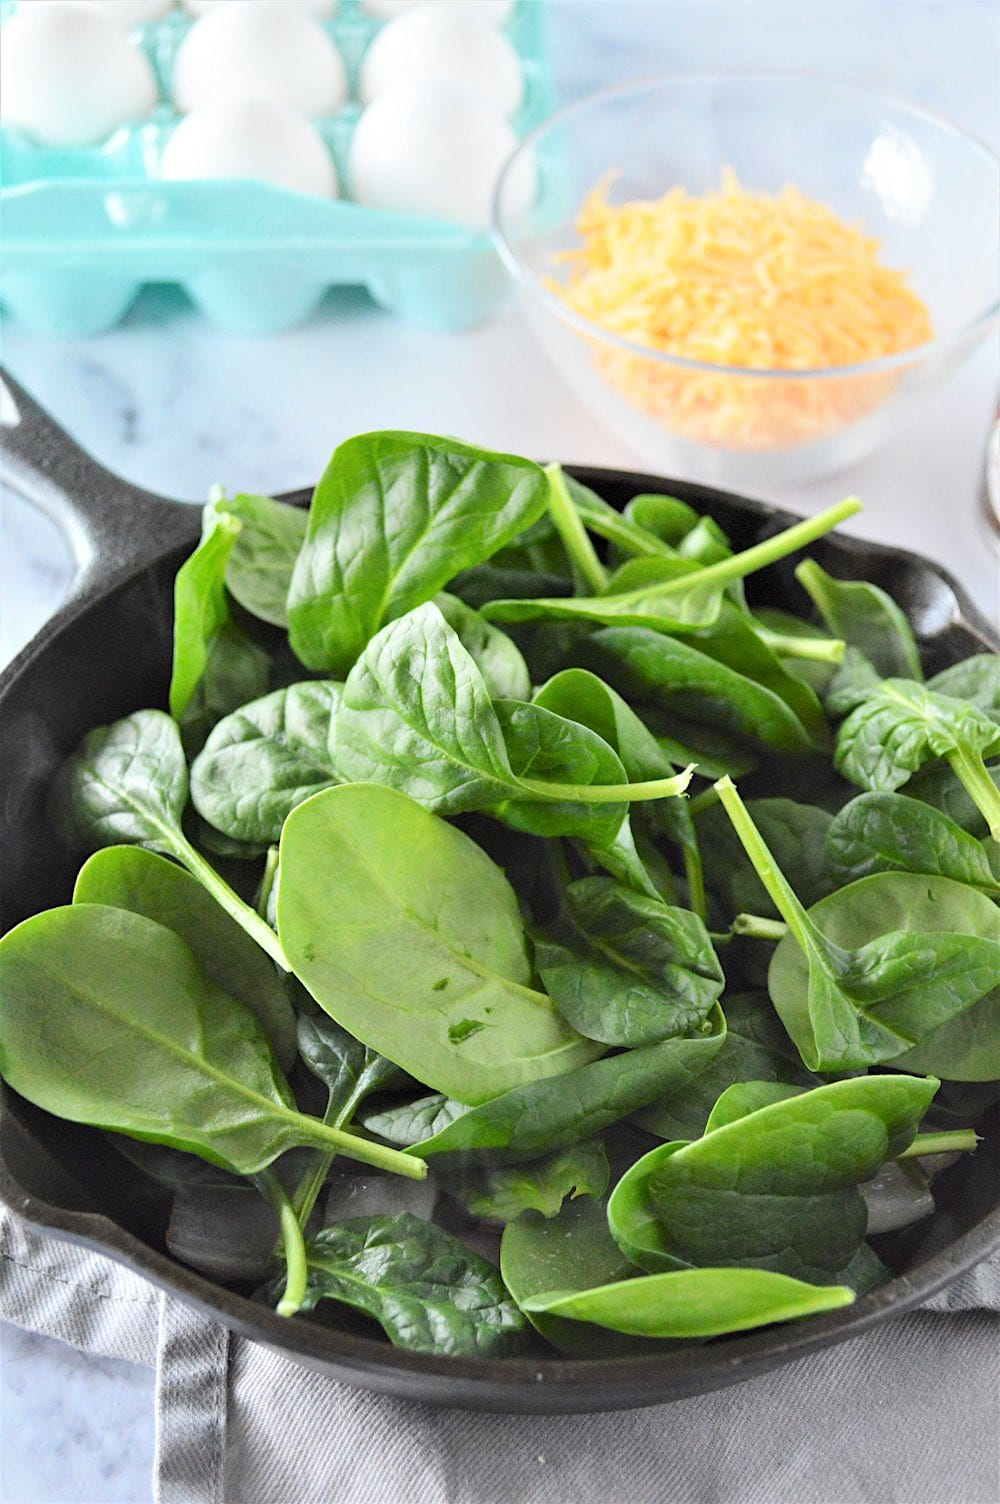 Spinach cooking in a skillet until wilted.